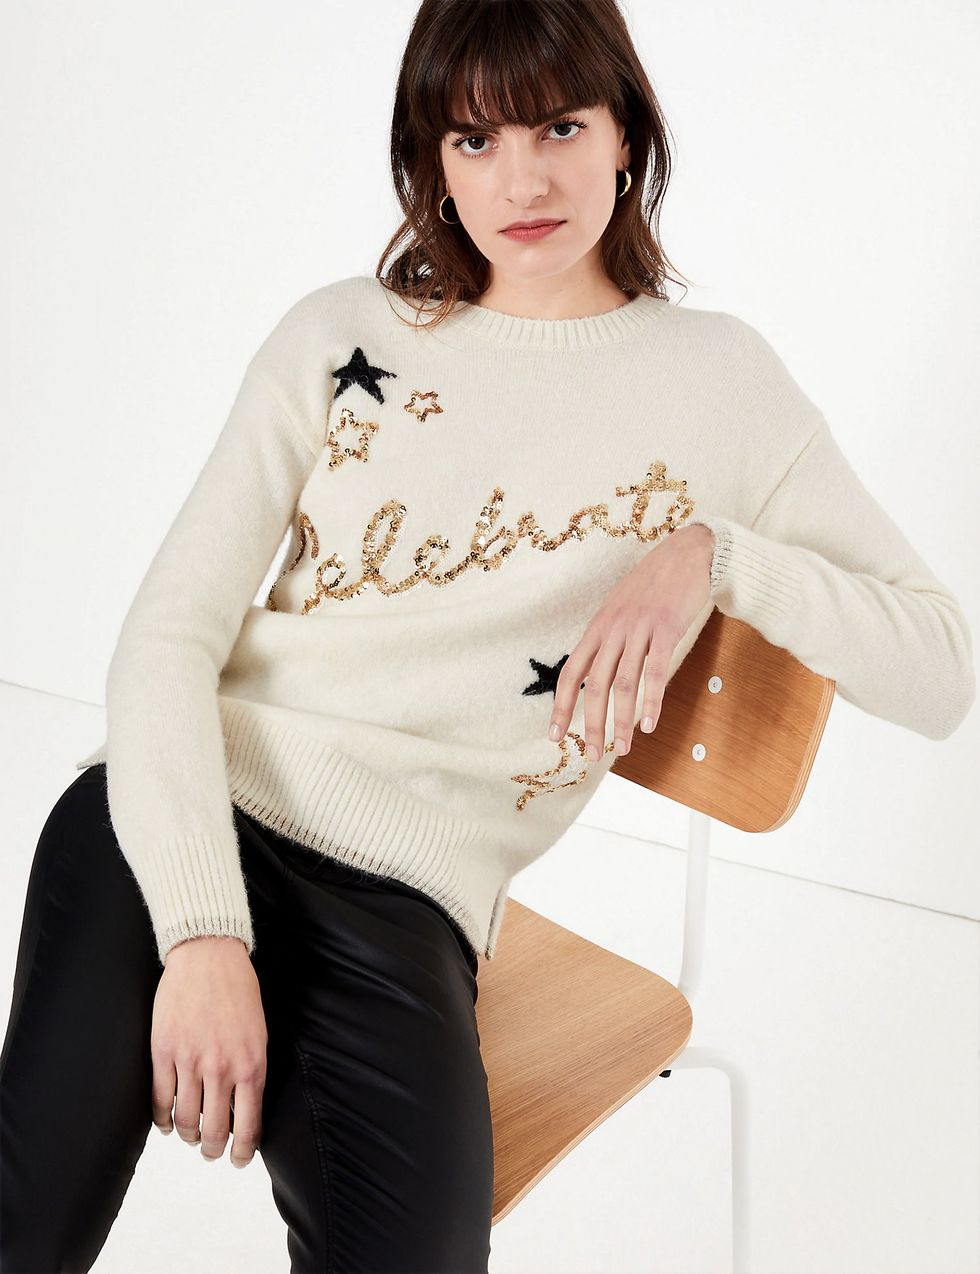 This Love Island Christmas Jumper Is What It Is Perfect In 2020 Christmas Jumpers Best Christmas Jumpers Jumpers For Women